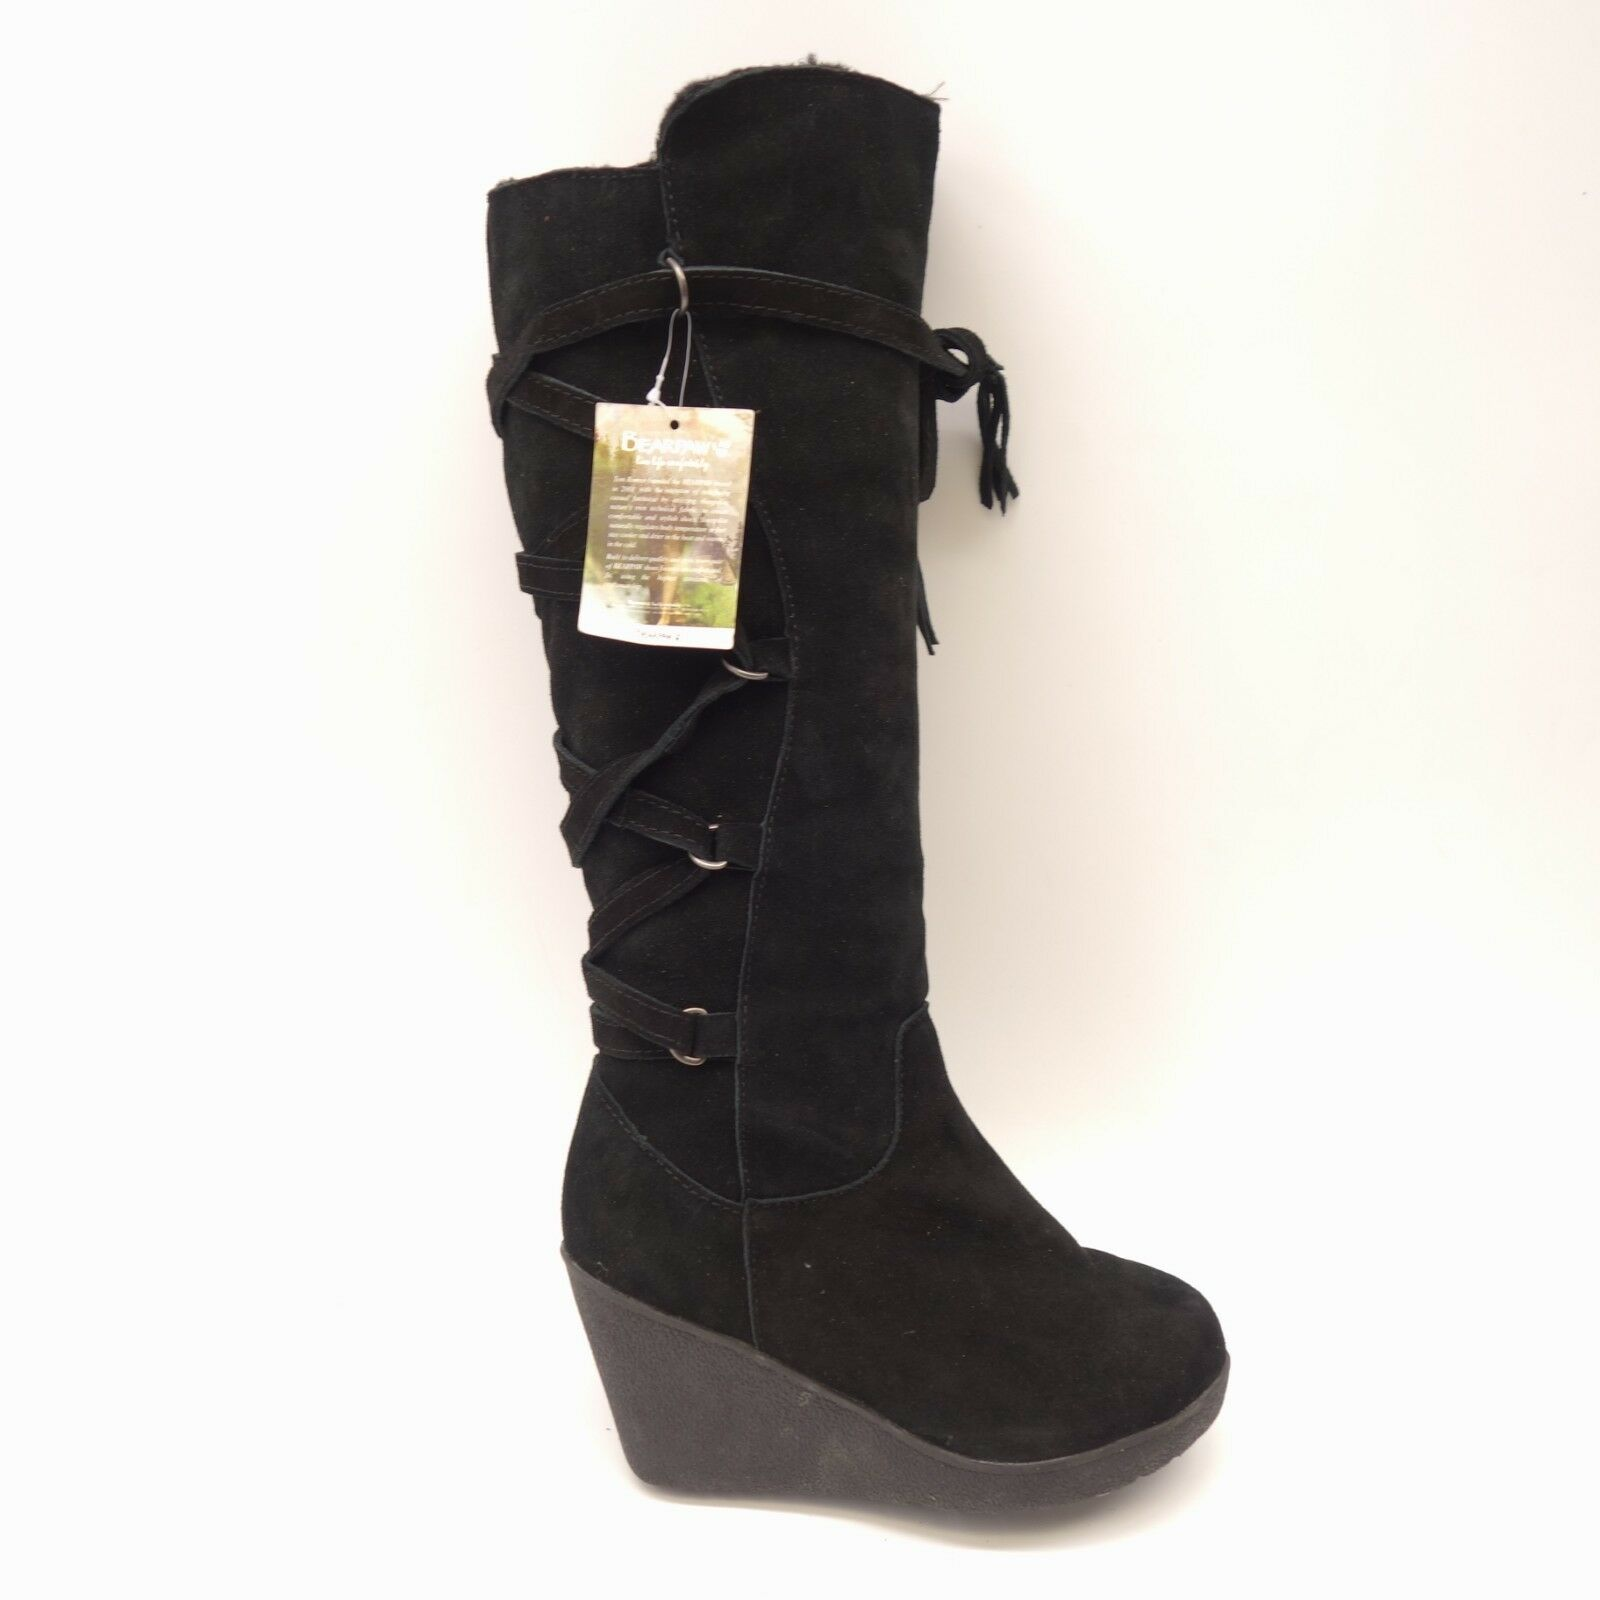 New BearPaw Womens Britney Black Suede Knee-High Wedge Boots Size 7